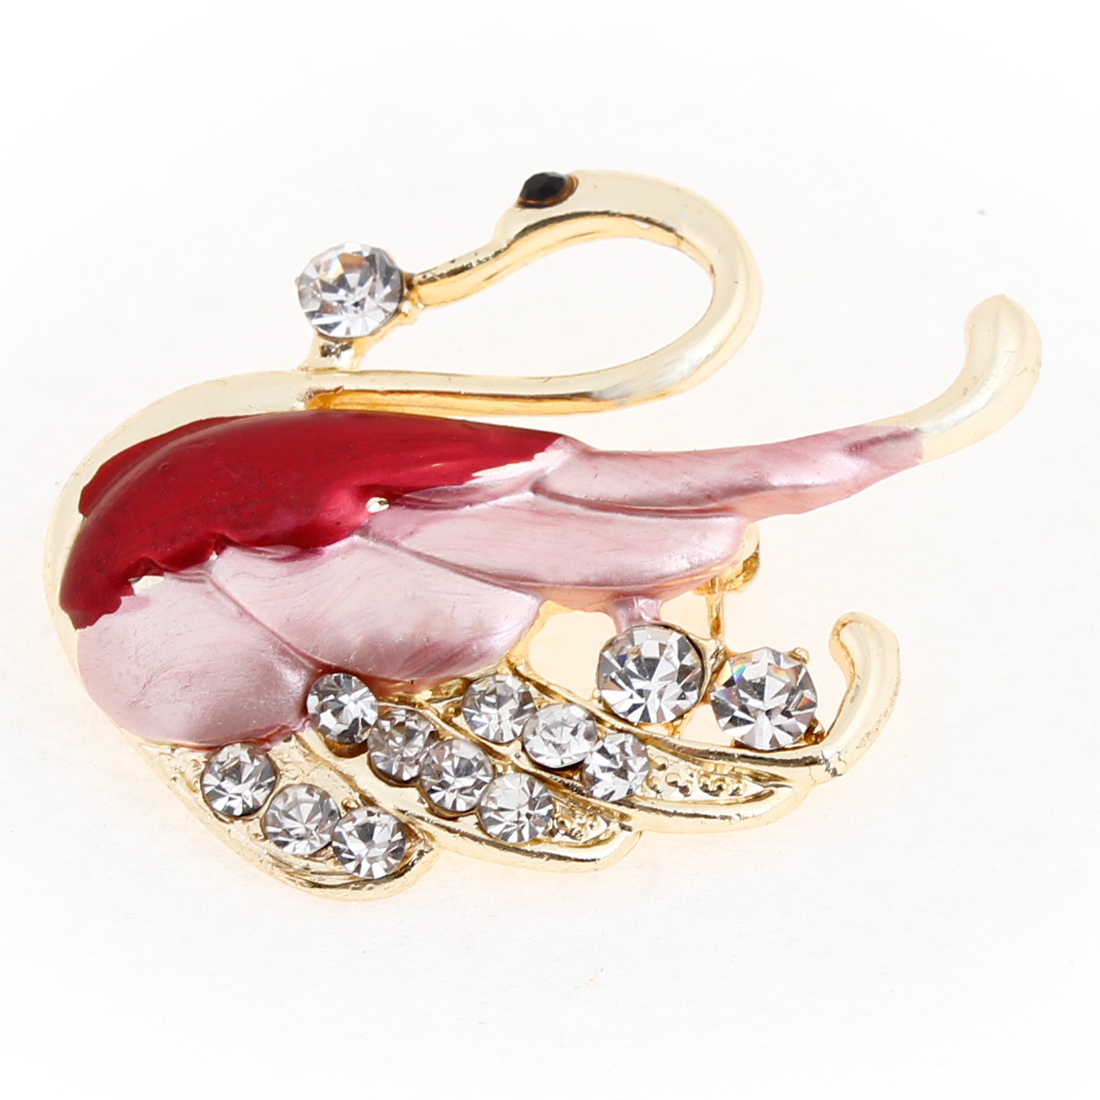 Rhinestone Embellished Red Pink Wing Swan Decor Brooch Breast Pin for Ladies